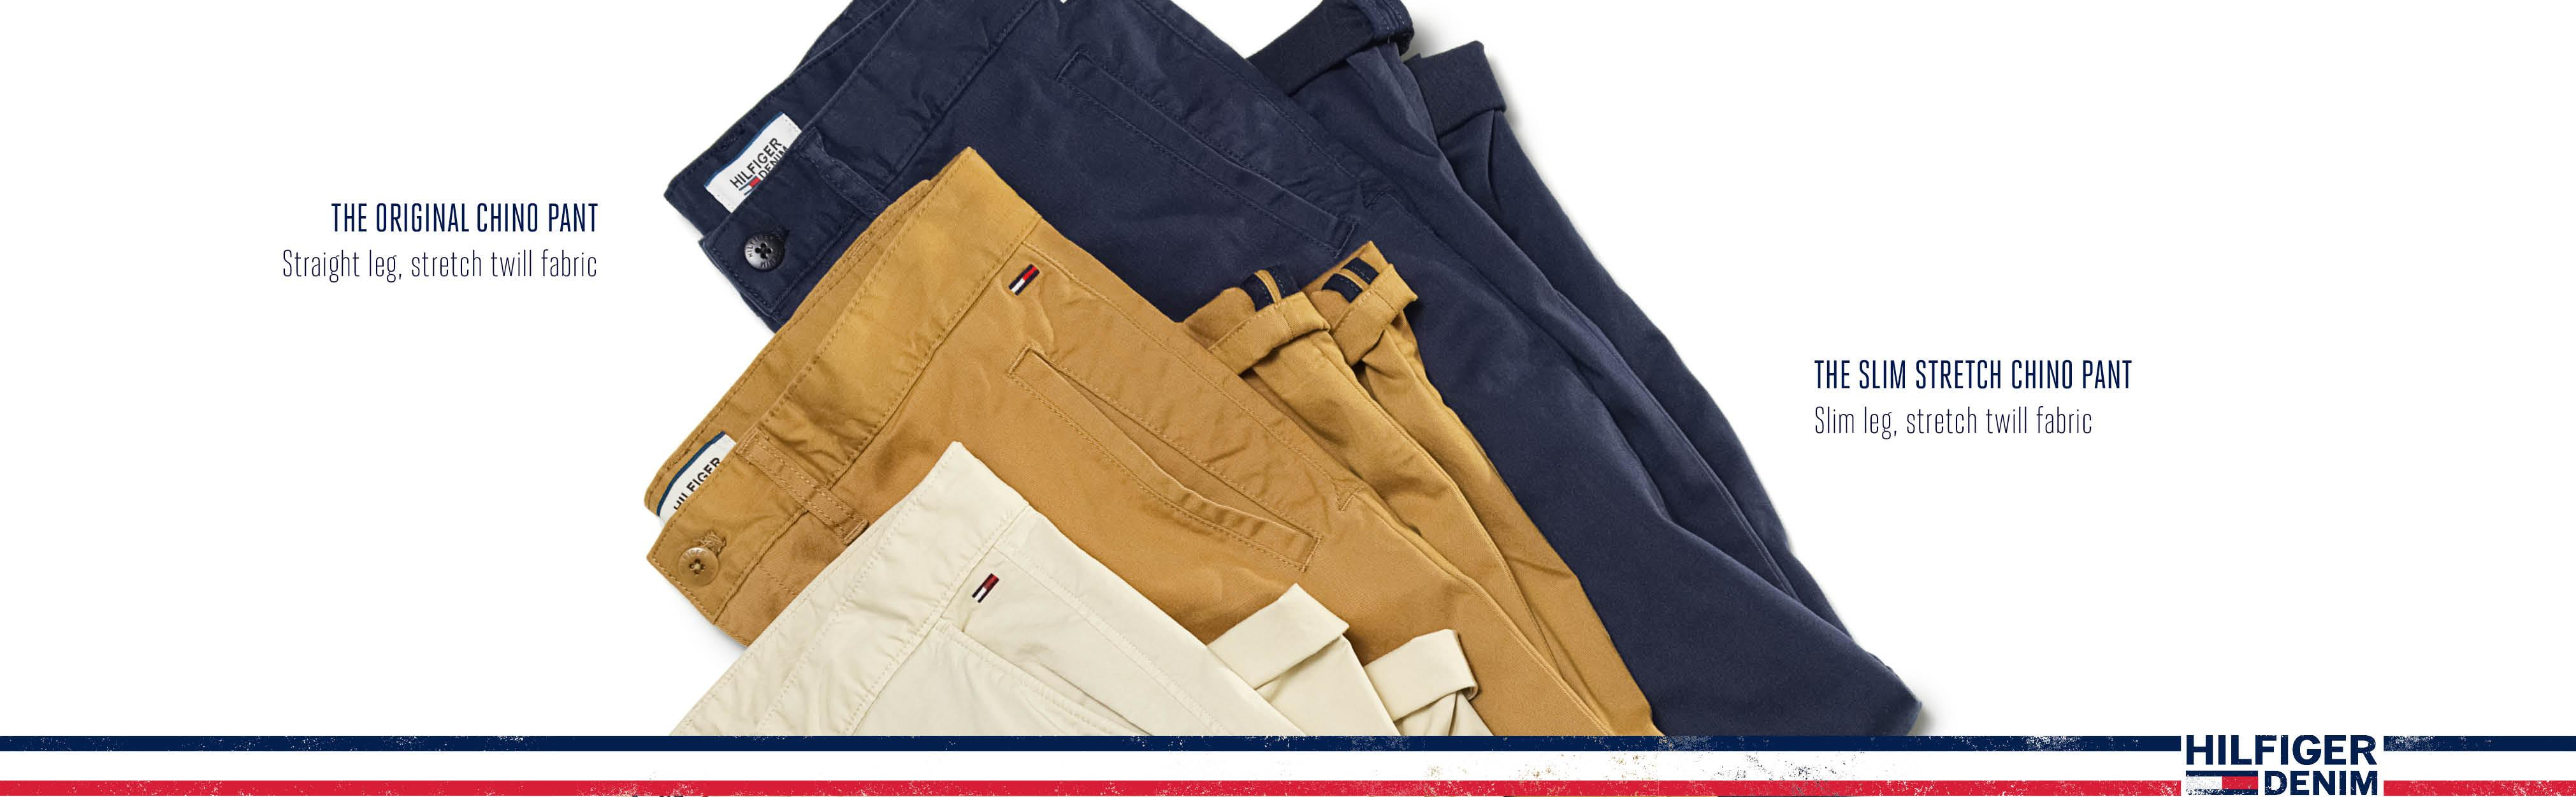 2385e989 tommy hilfiger chinos, tommy hilfiger chino pants men, chino pants men,  chinos pants